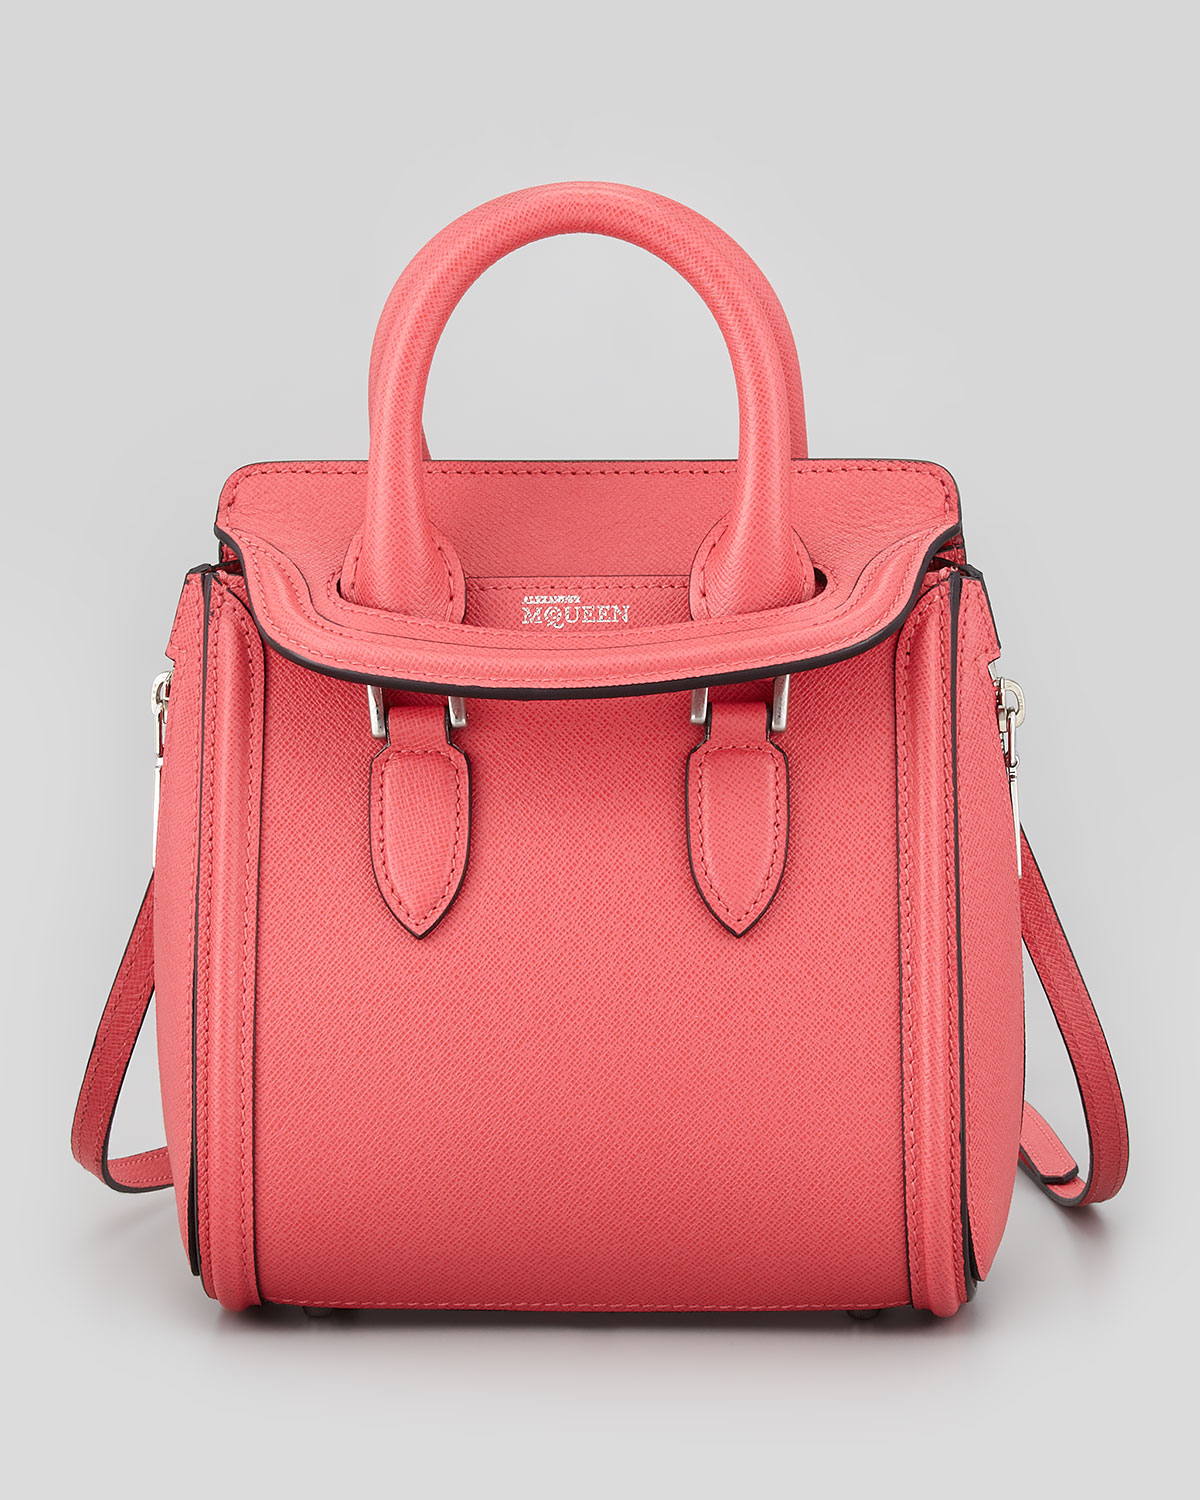 Alexander Mcqueen Heroine Mini Satchel Bag in Pink | Lyst